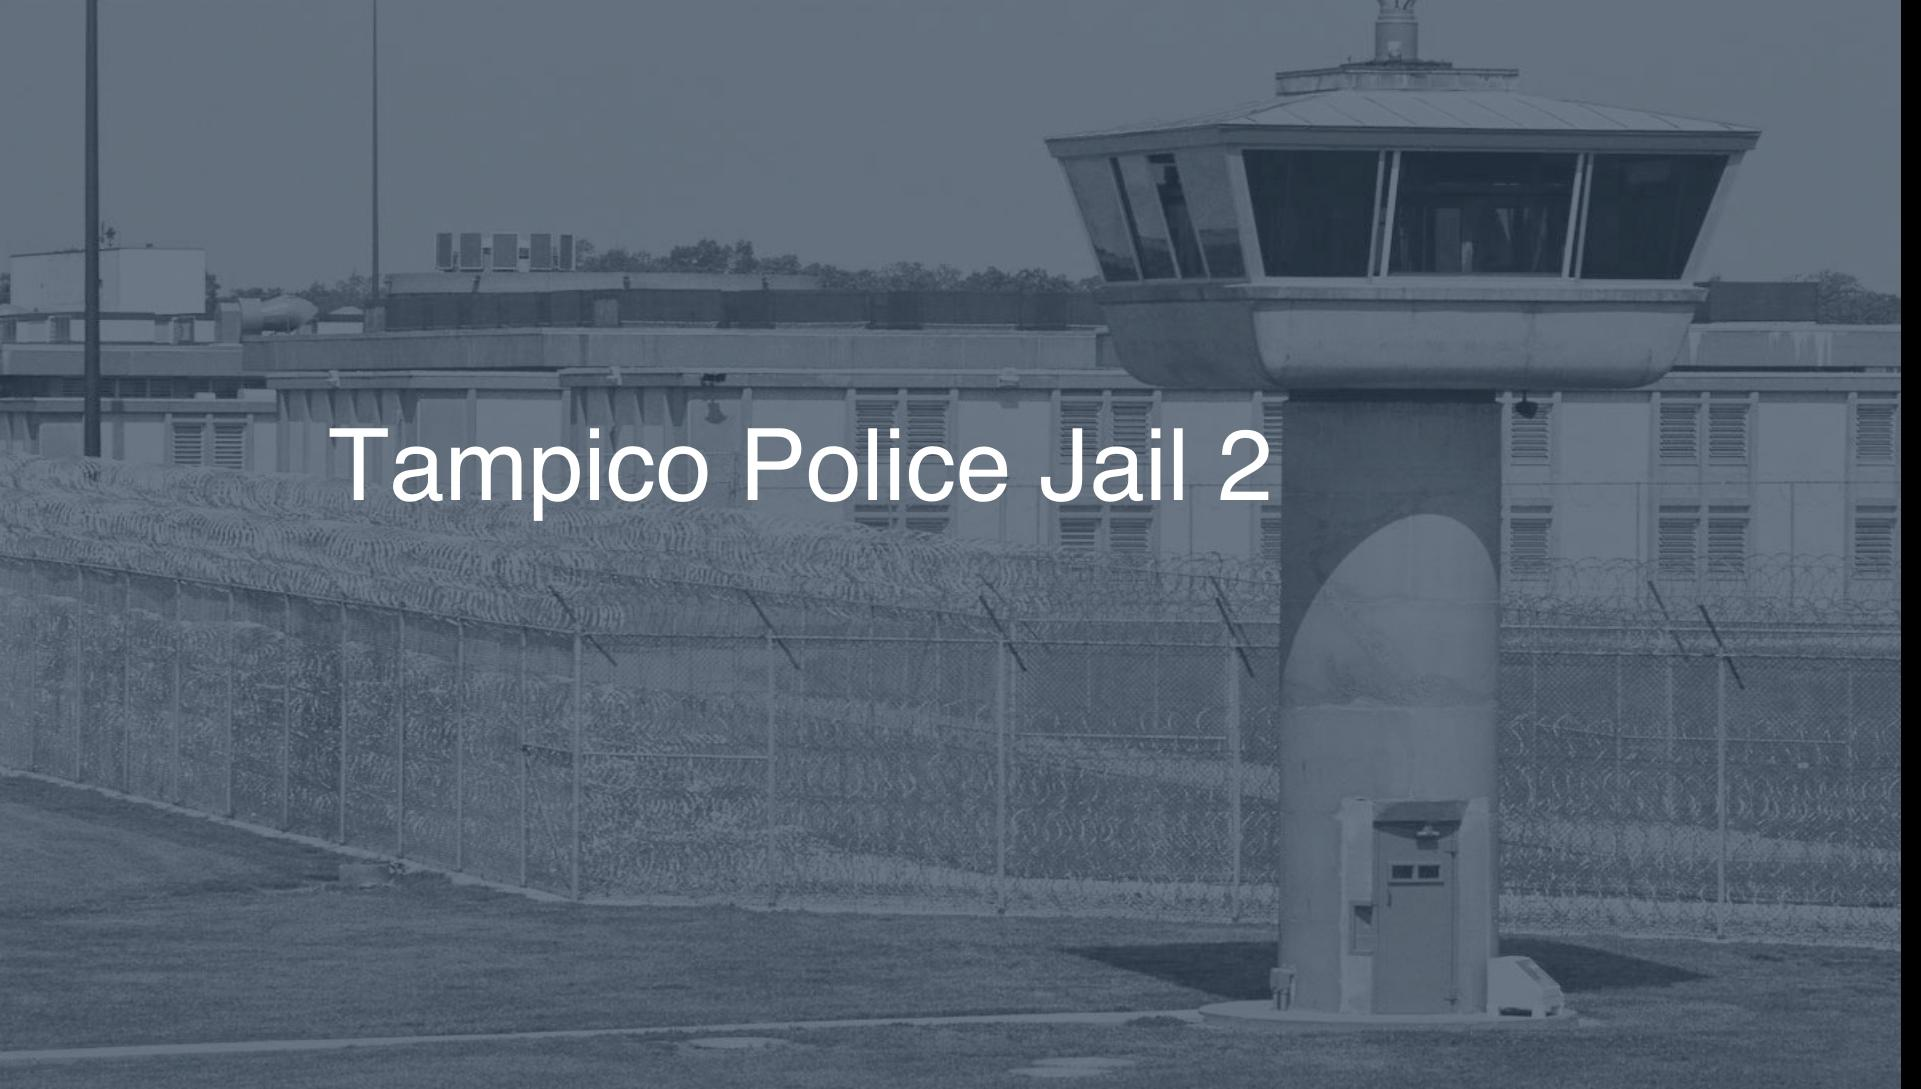 Tampico Police Jail correctional facility picture